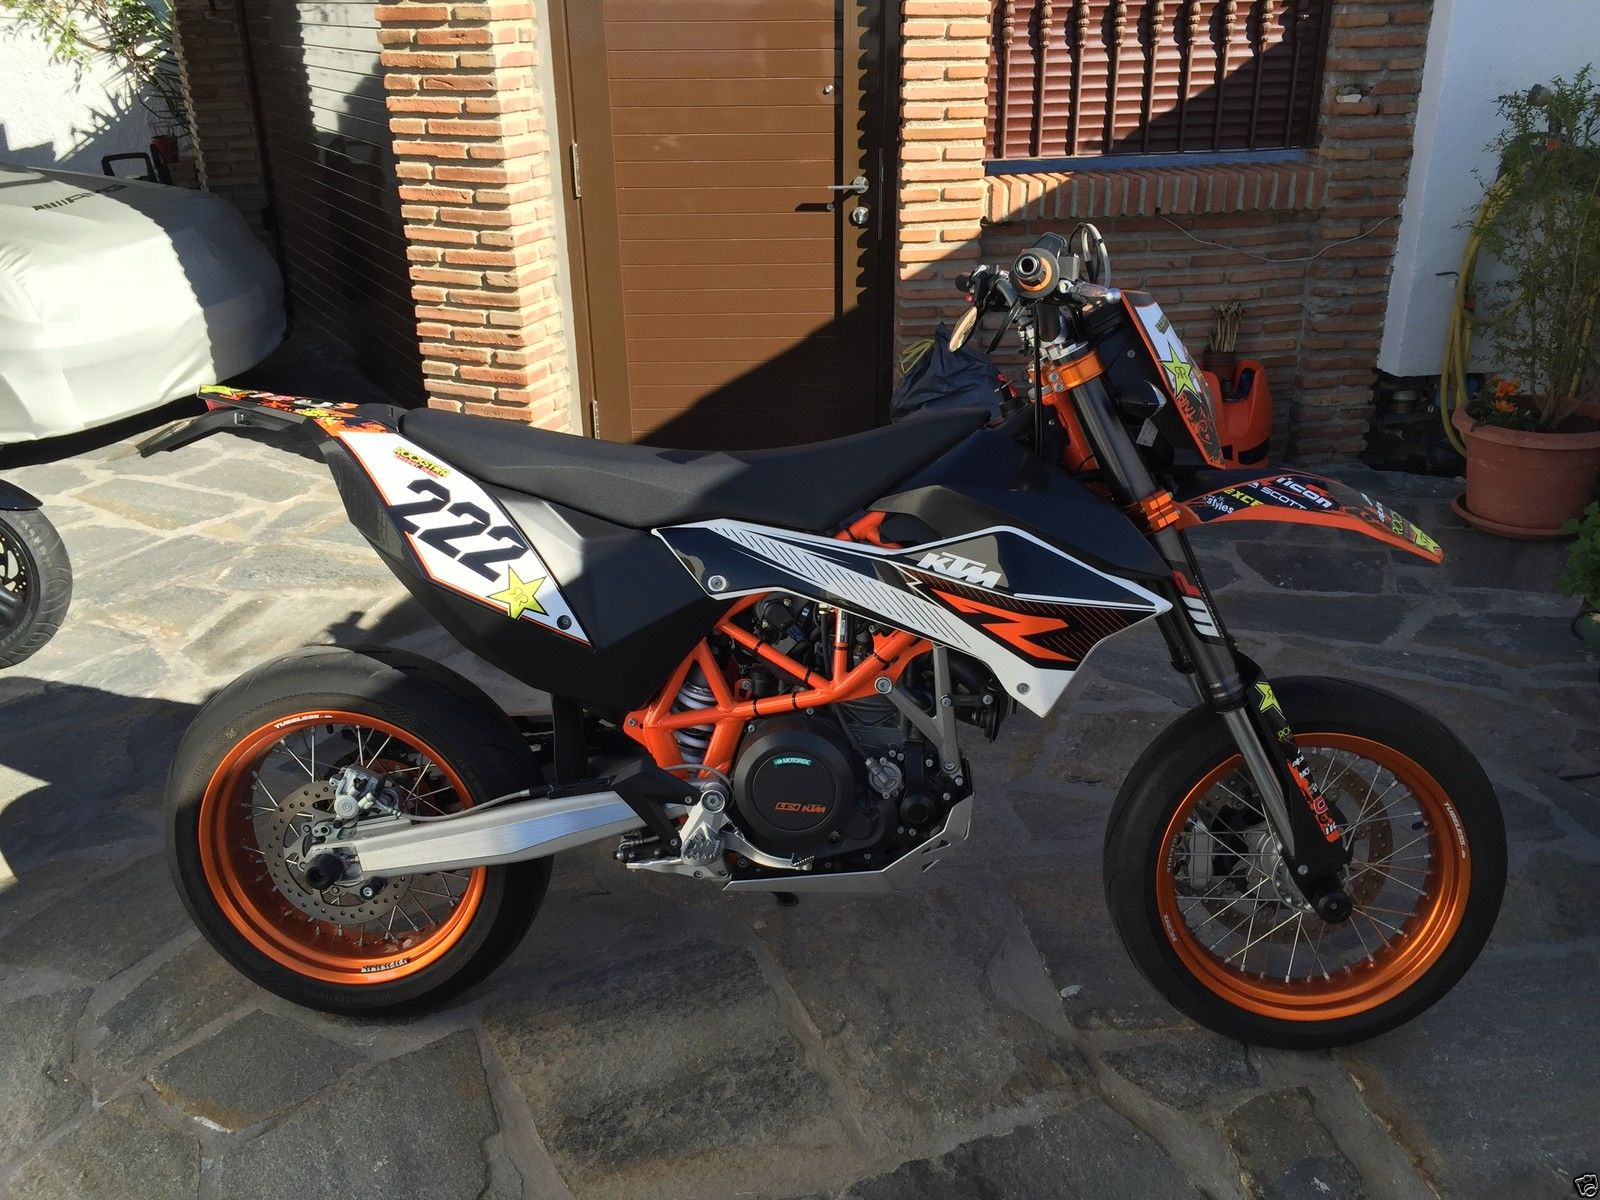 ktm 690 smc r 2012 supermoto located in spain. Black Bedroom Furniture Sets. Home Design Ideas